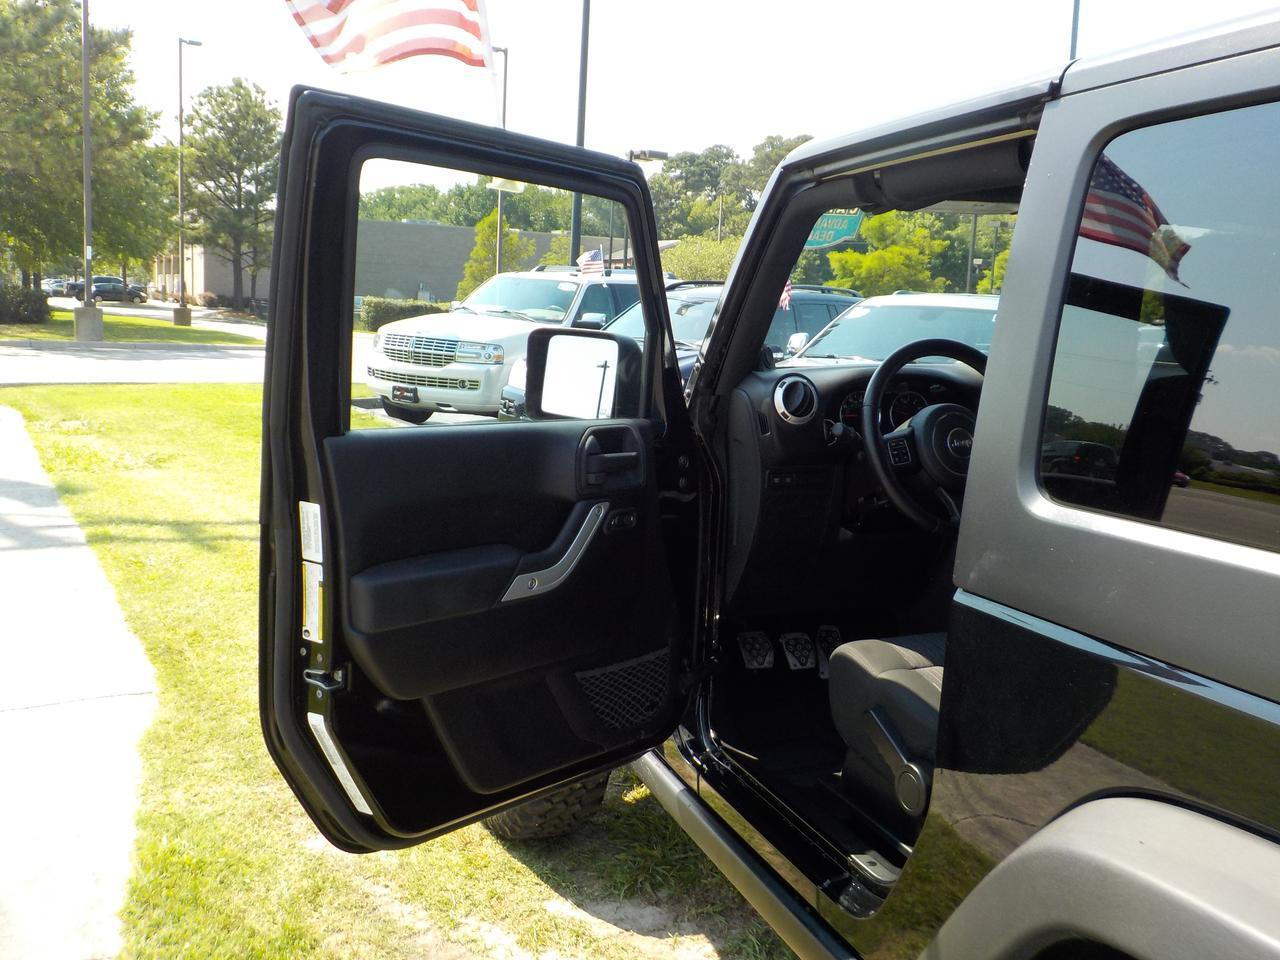 2011 JEEP WRANGLER RUBICON CALL OF DUTY BLACK OPS EDITION MANUAL 4X4, HARD TOP, FENDER FLARES, BLUETOOTH, UCONNECT! Virginia Beach VA